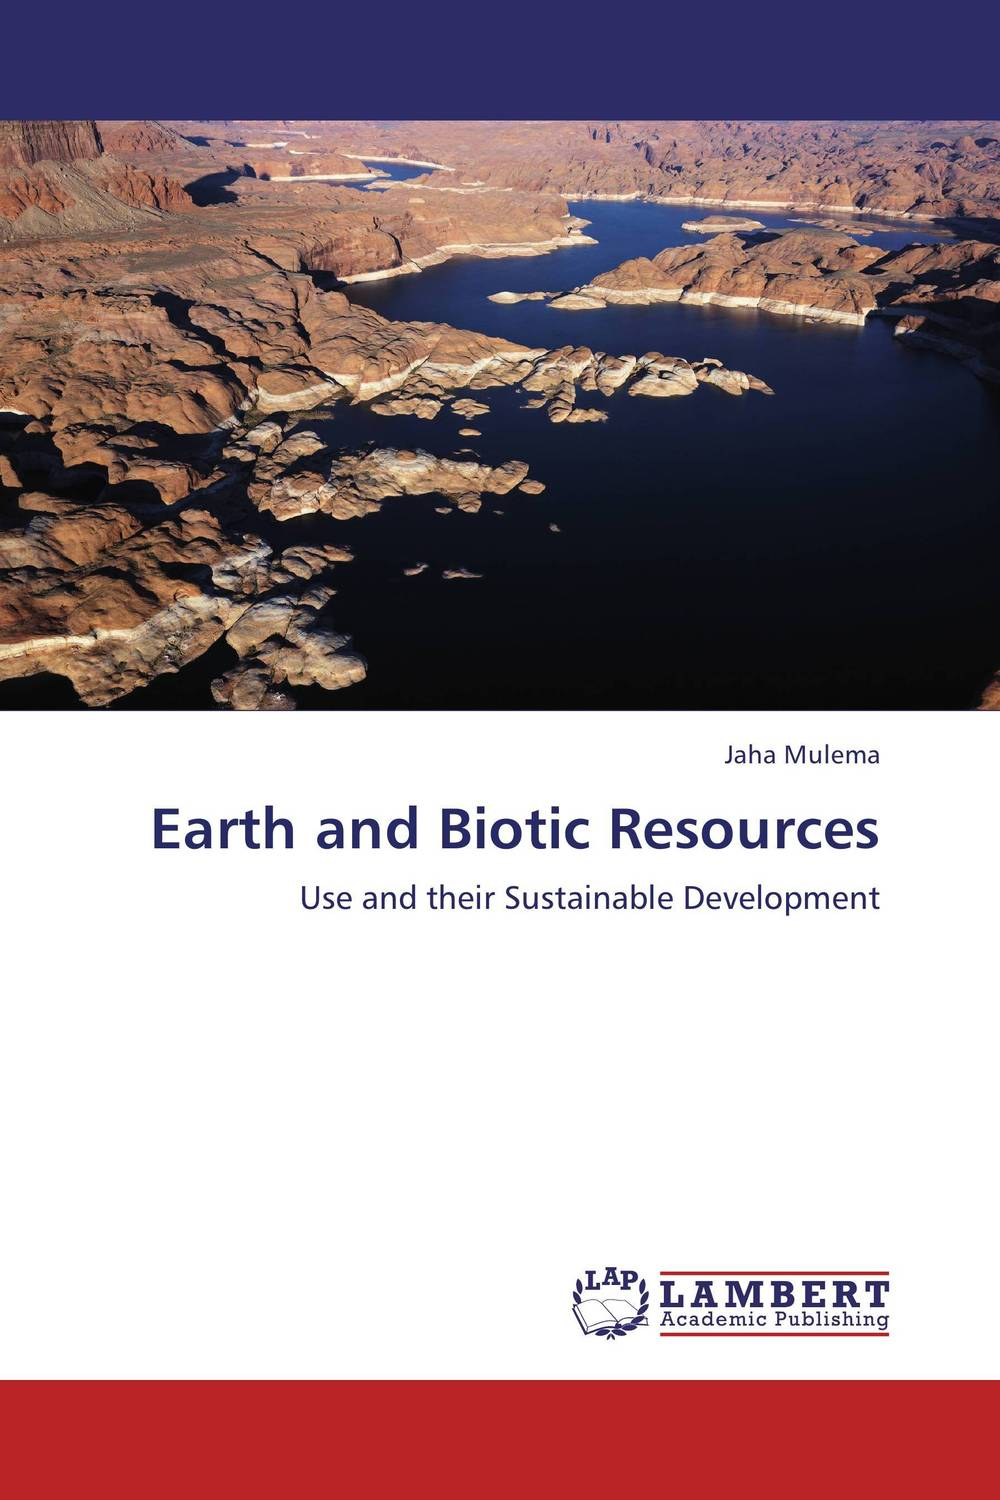 Earth and Biotic Resources verne j journey to the centre of the earth